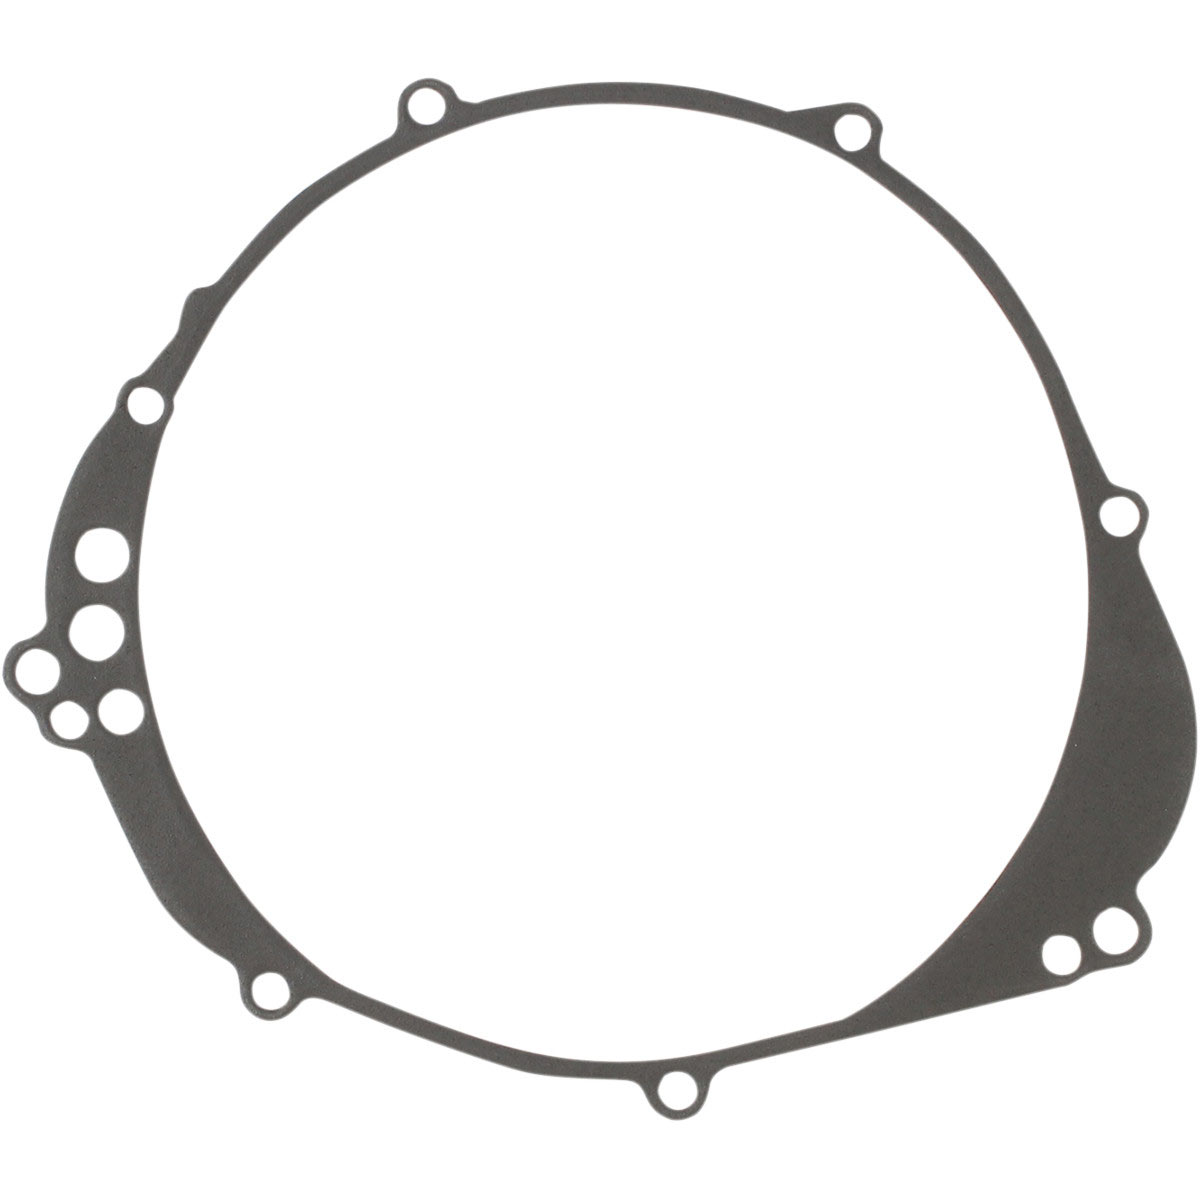 Cometic Clutch Cover Gasket for YZF-R1 98-03